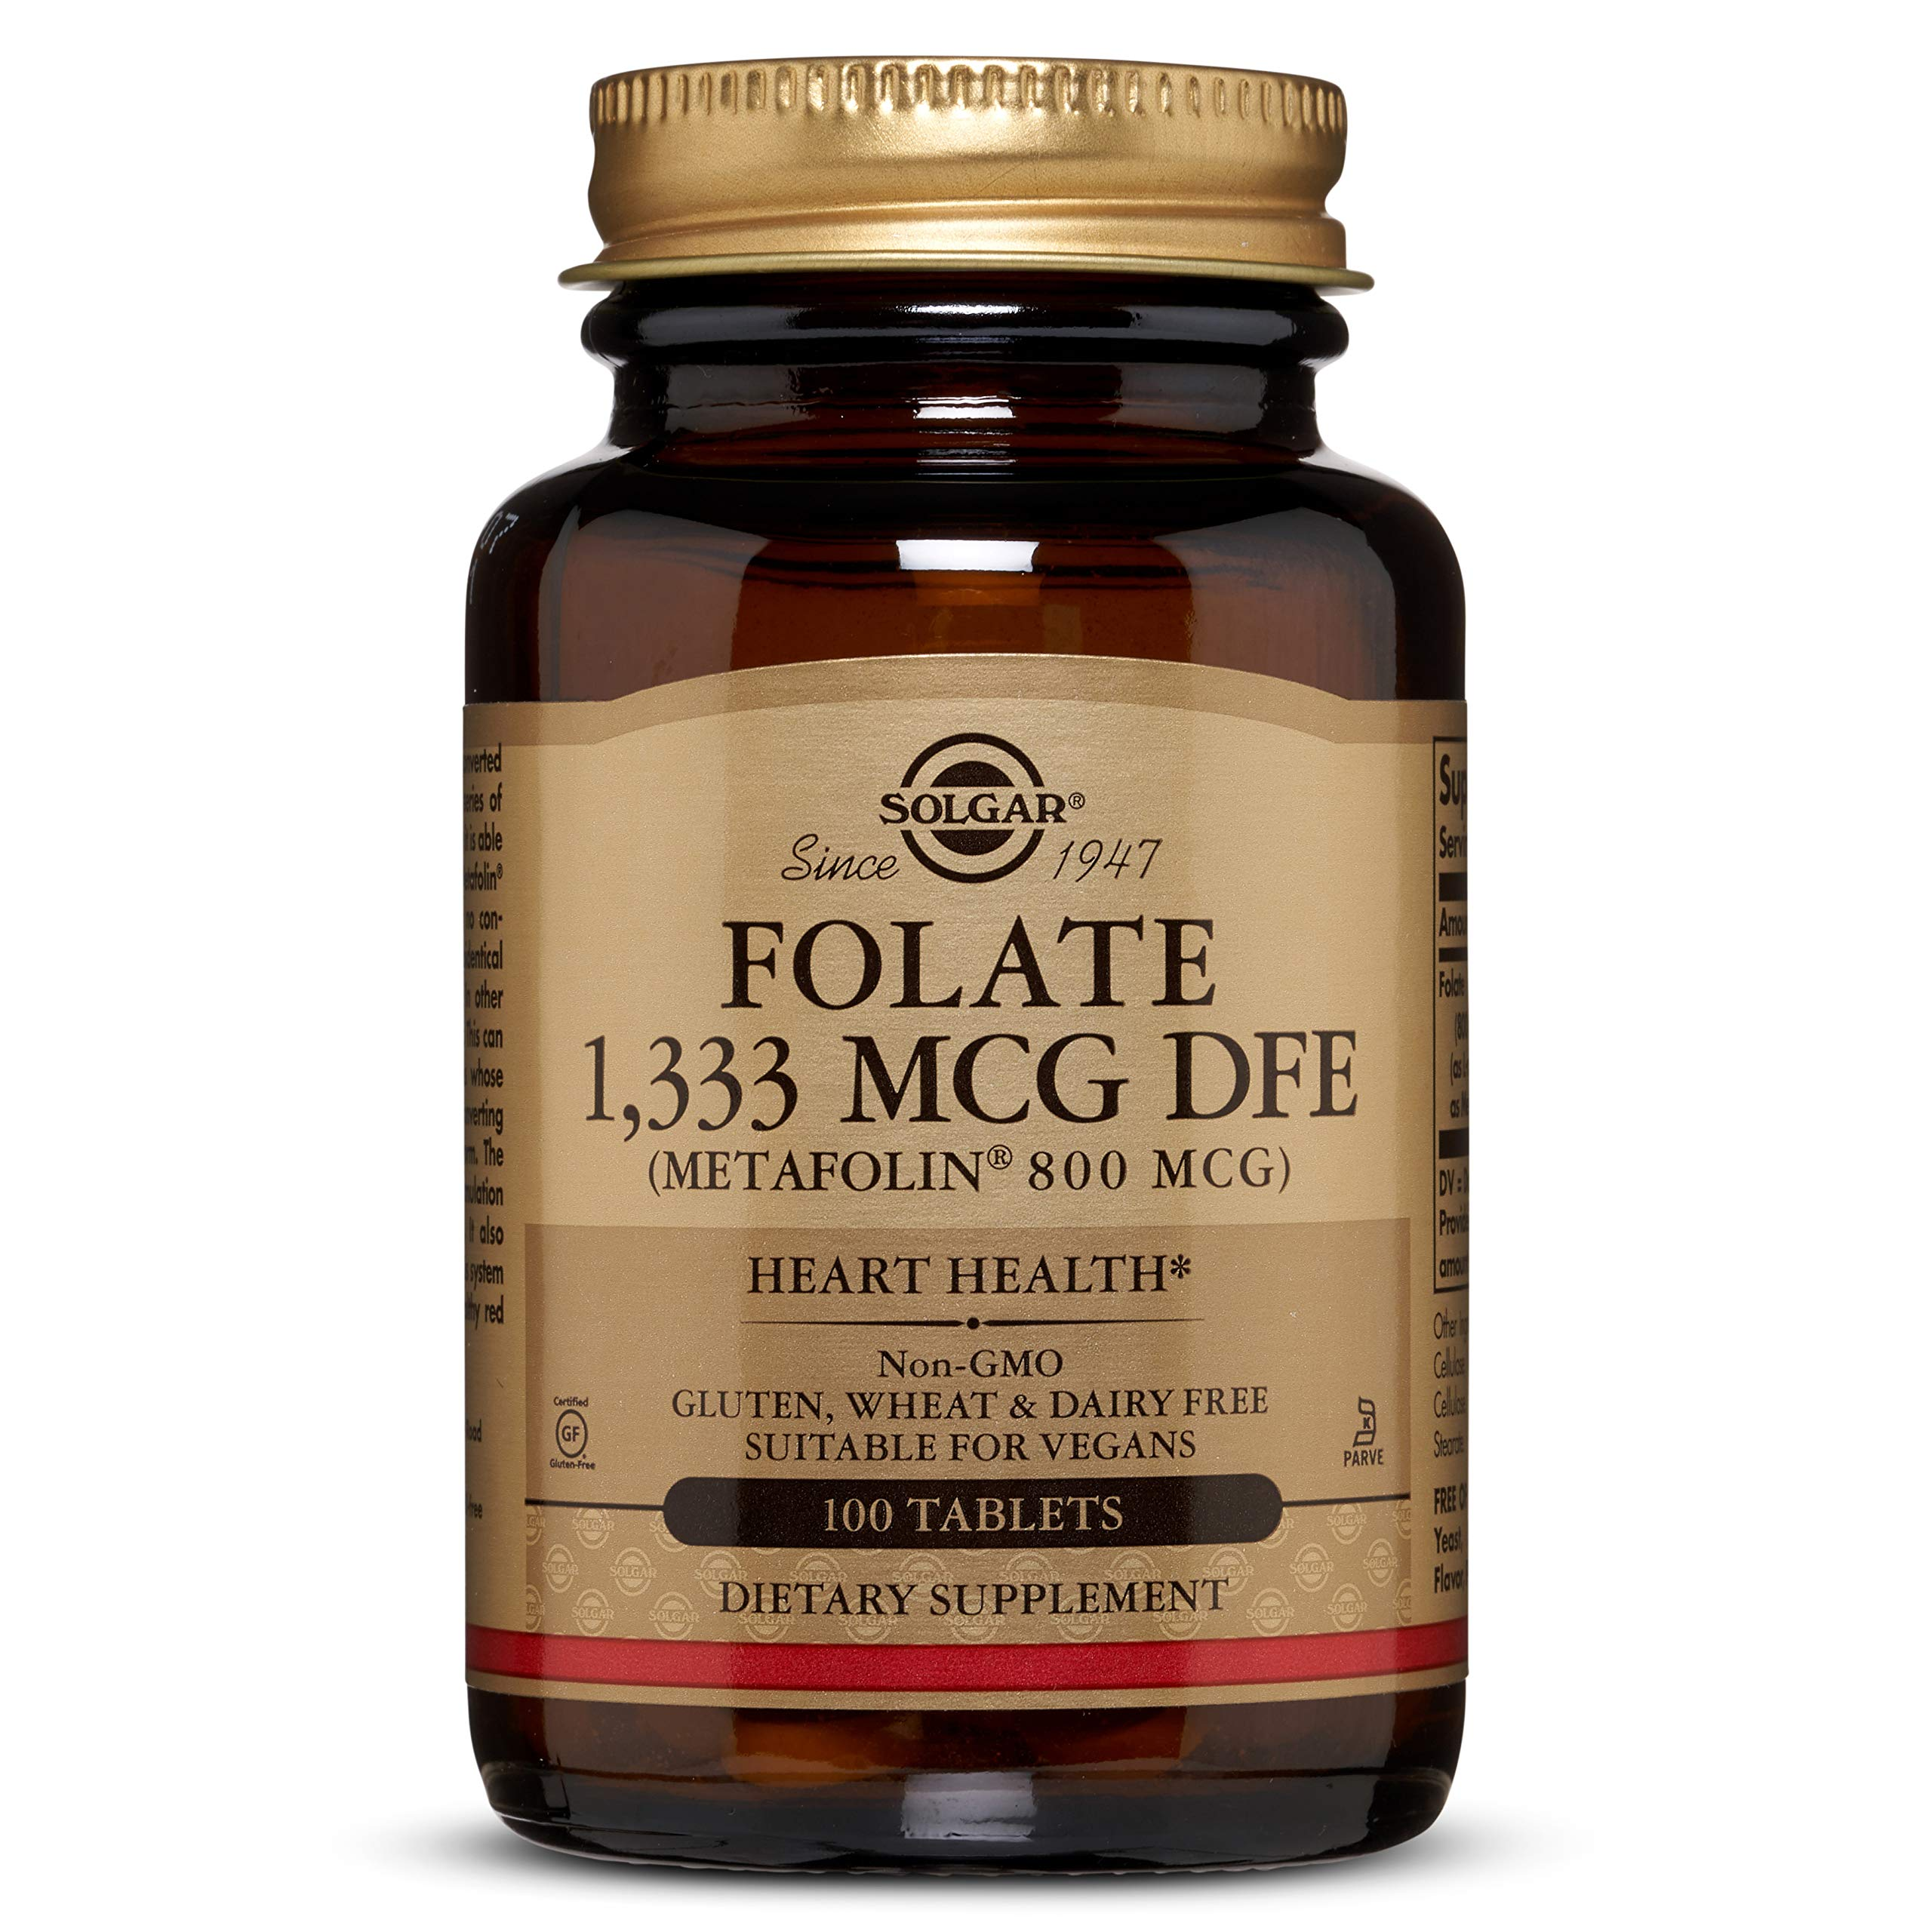 Folate 1,333 MCG DFE (Metafolin® 800 mcg) Tablets - 100 Count - 2 Pack by Solgar